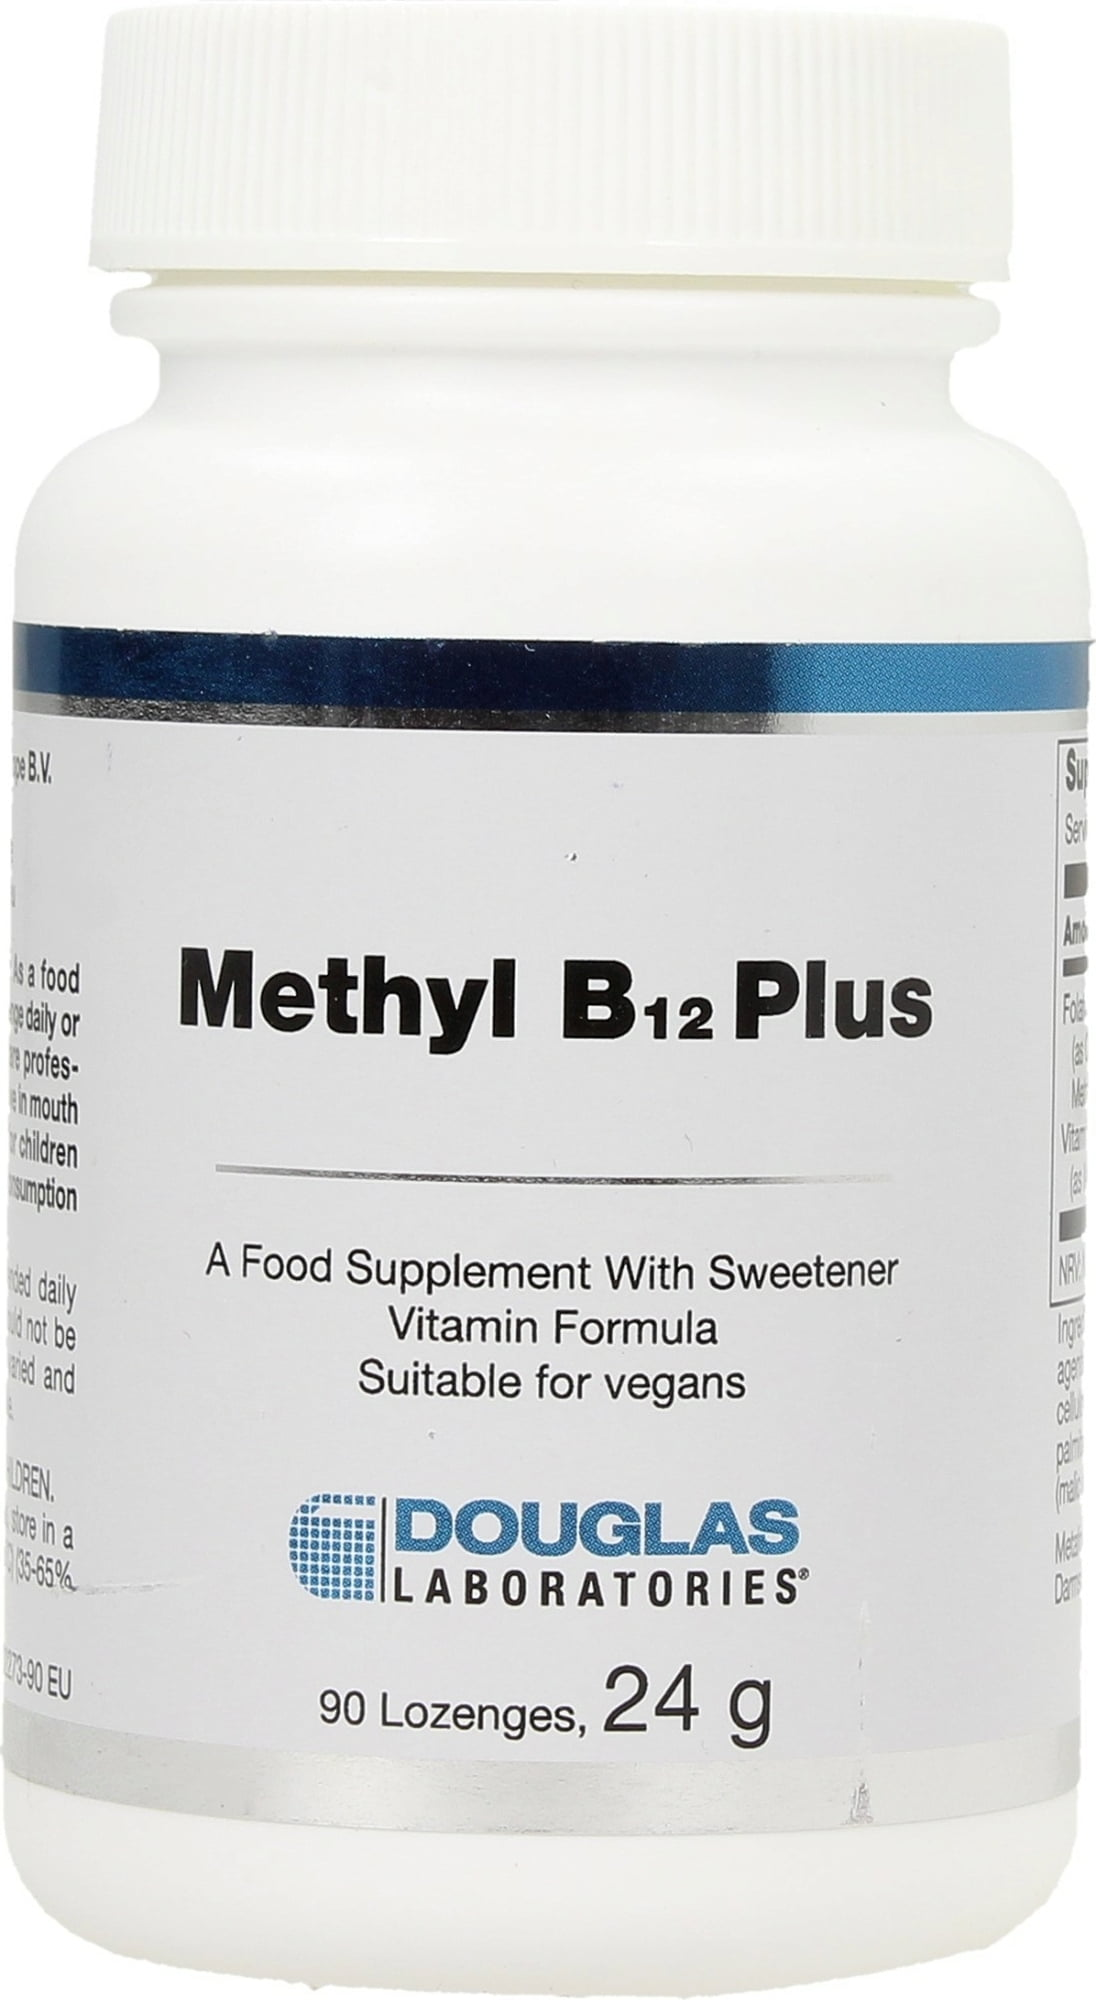 Douglas Laboratories Methyl B12 Plus - 90 Tabletten von Douglas Laboratories